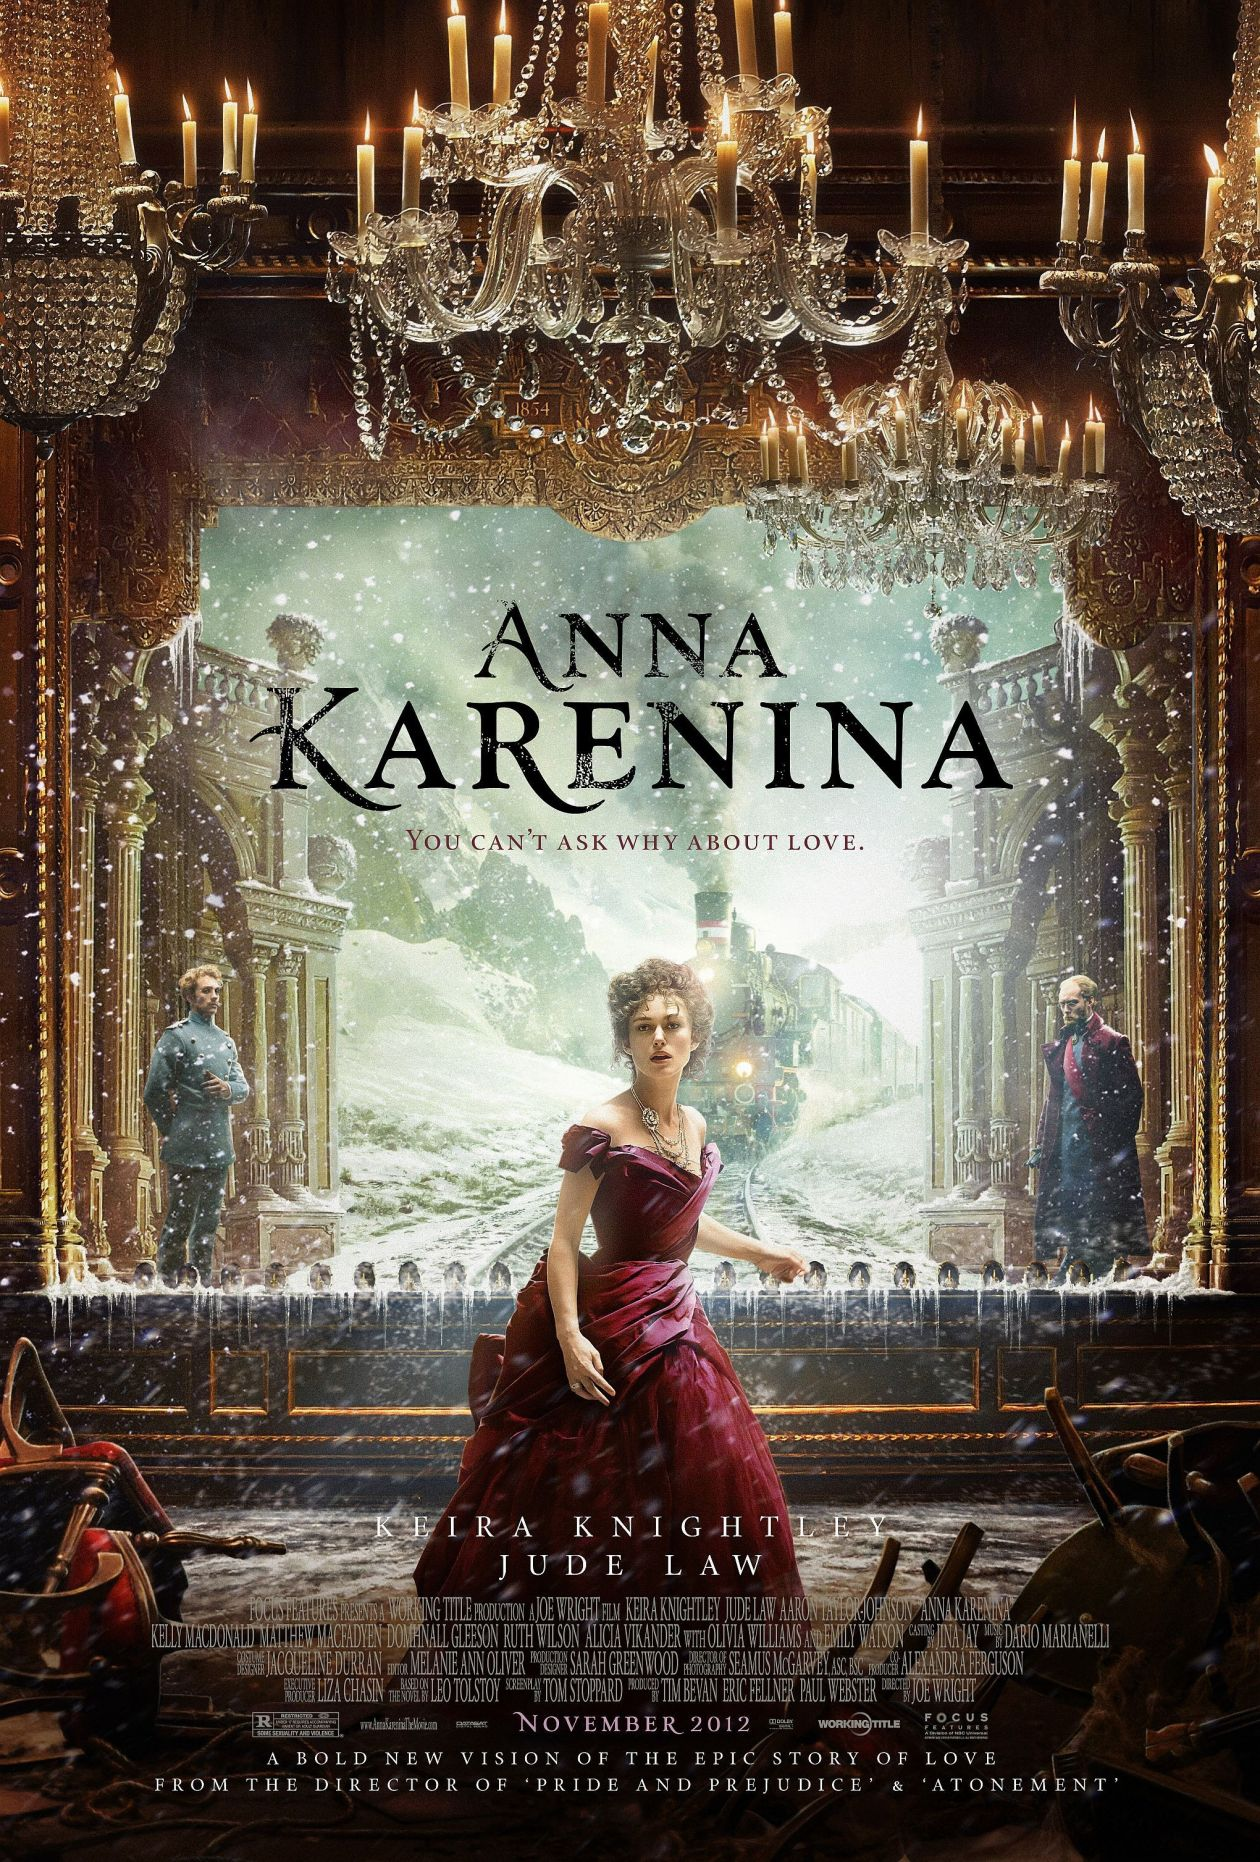 Keira Knightley actress | Anna Karenina / Joe Wright 2012 Movie Poster Affiche film